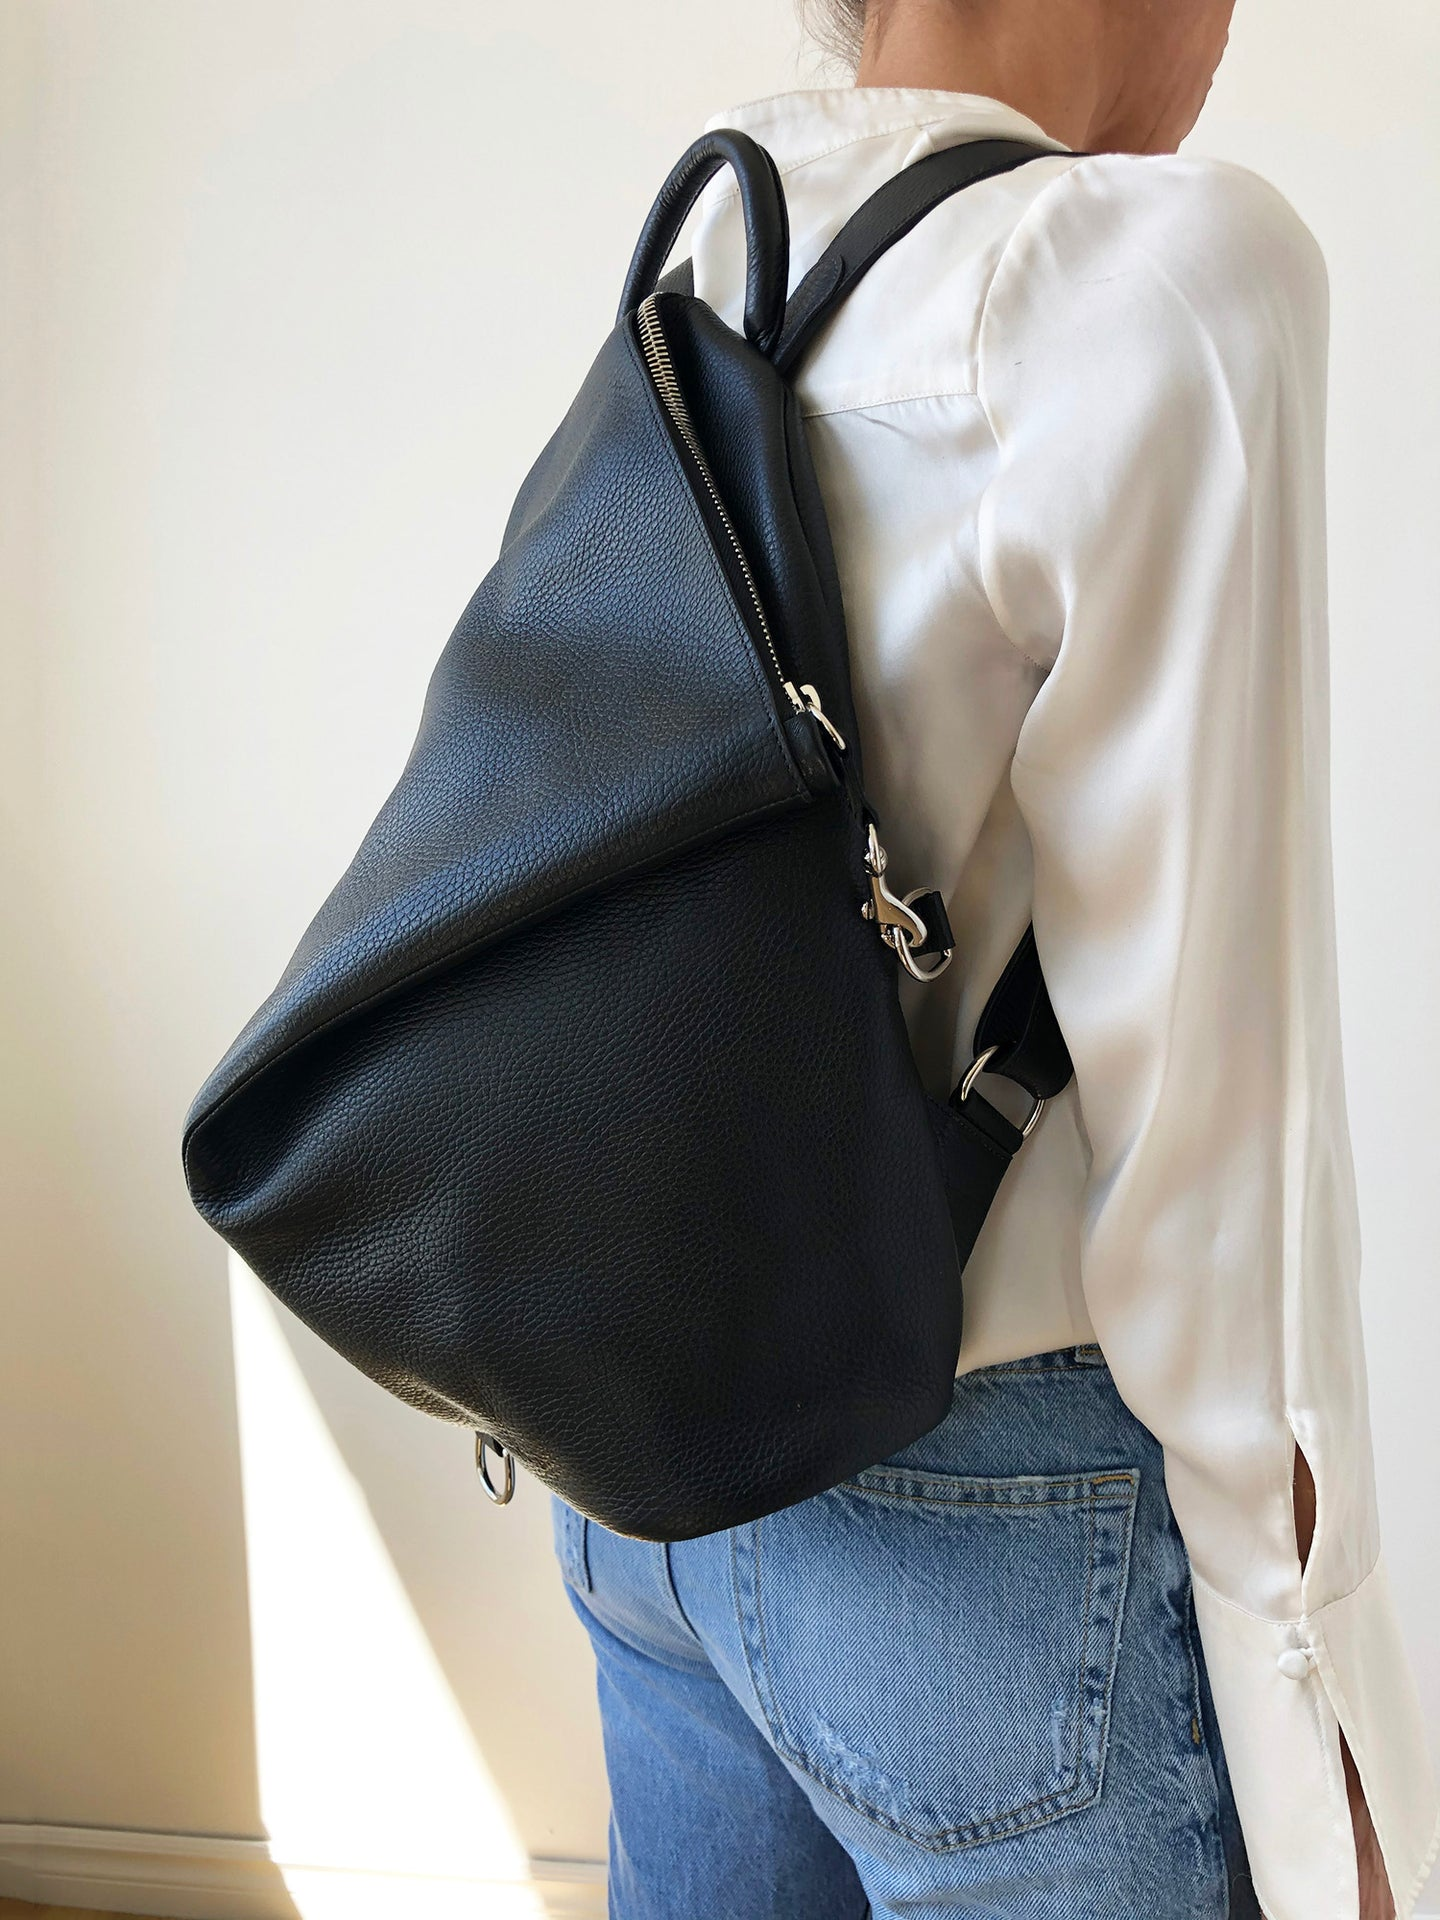 The Mercato Backpack in Black